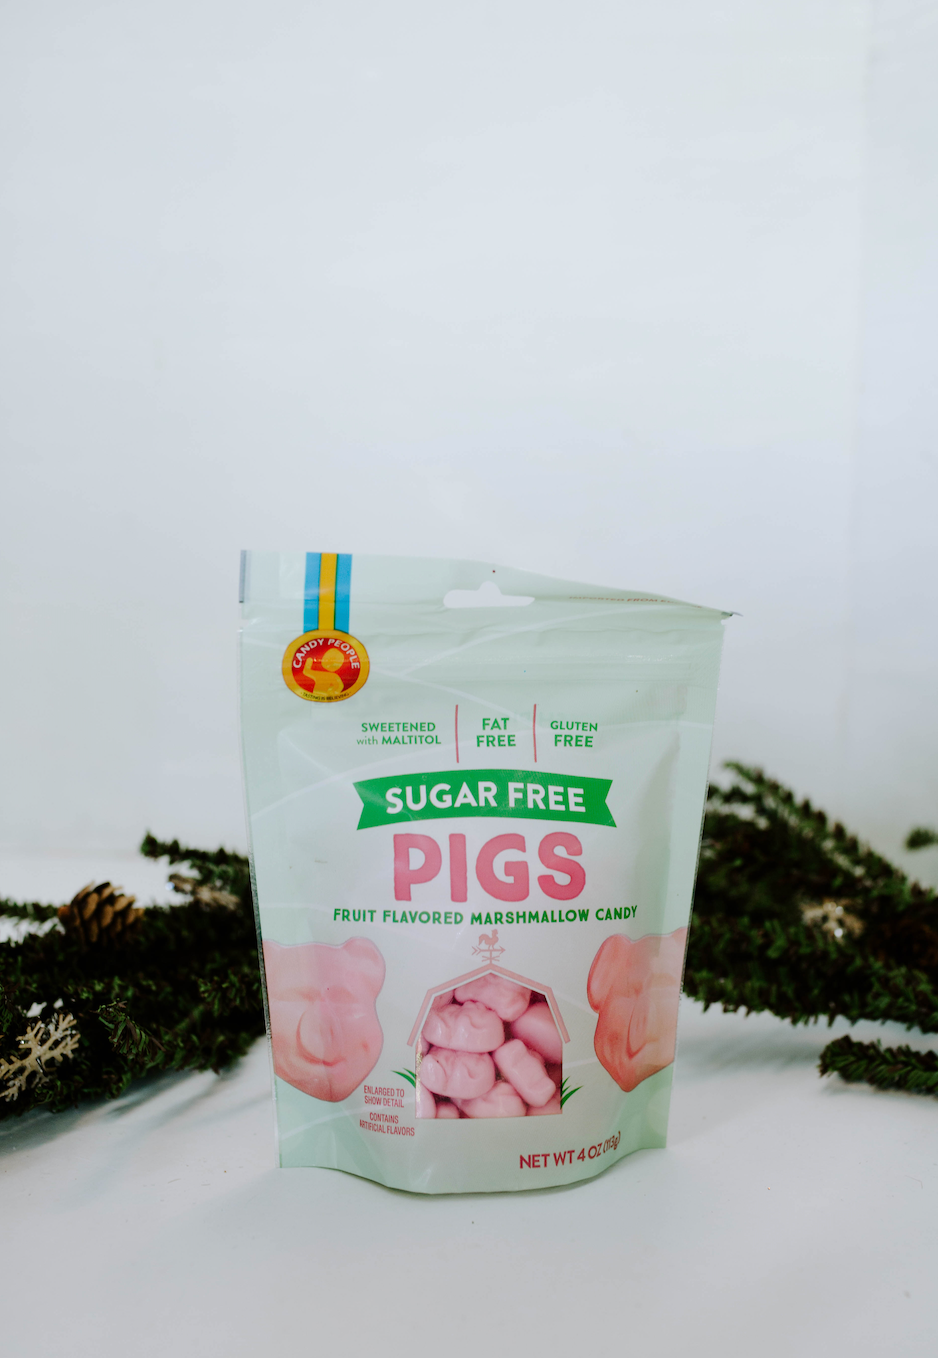 Sugar Free Pigs Marshmallow Candy